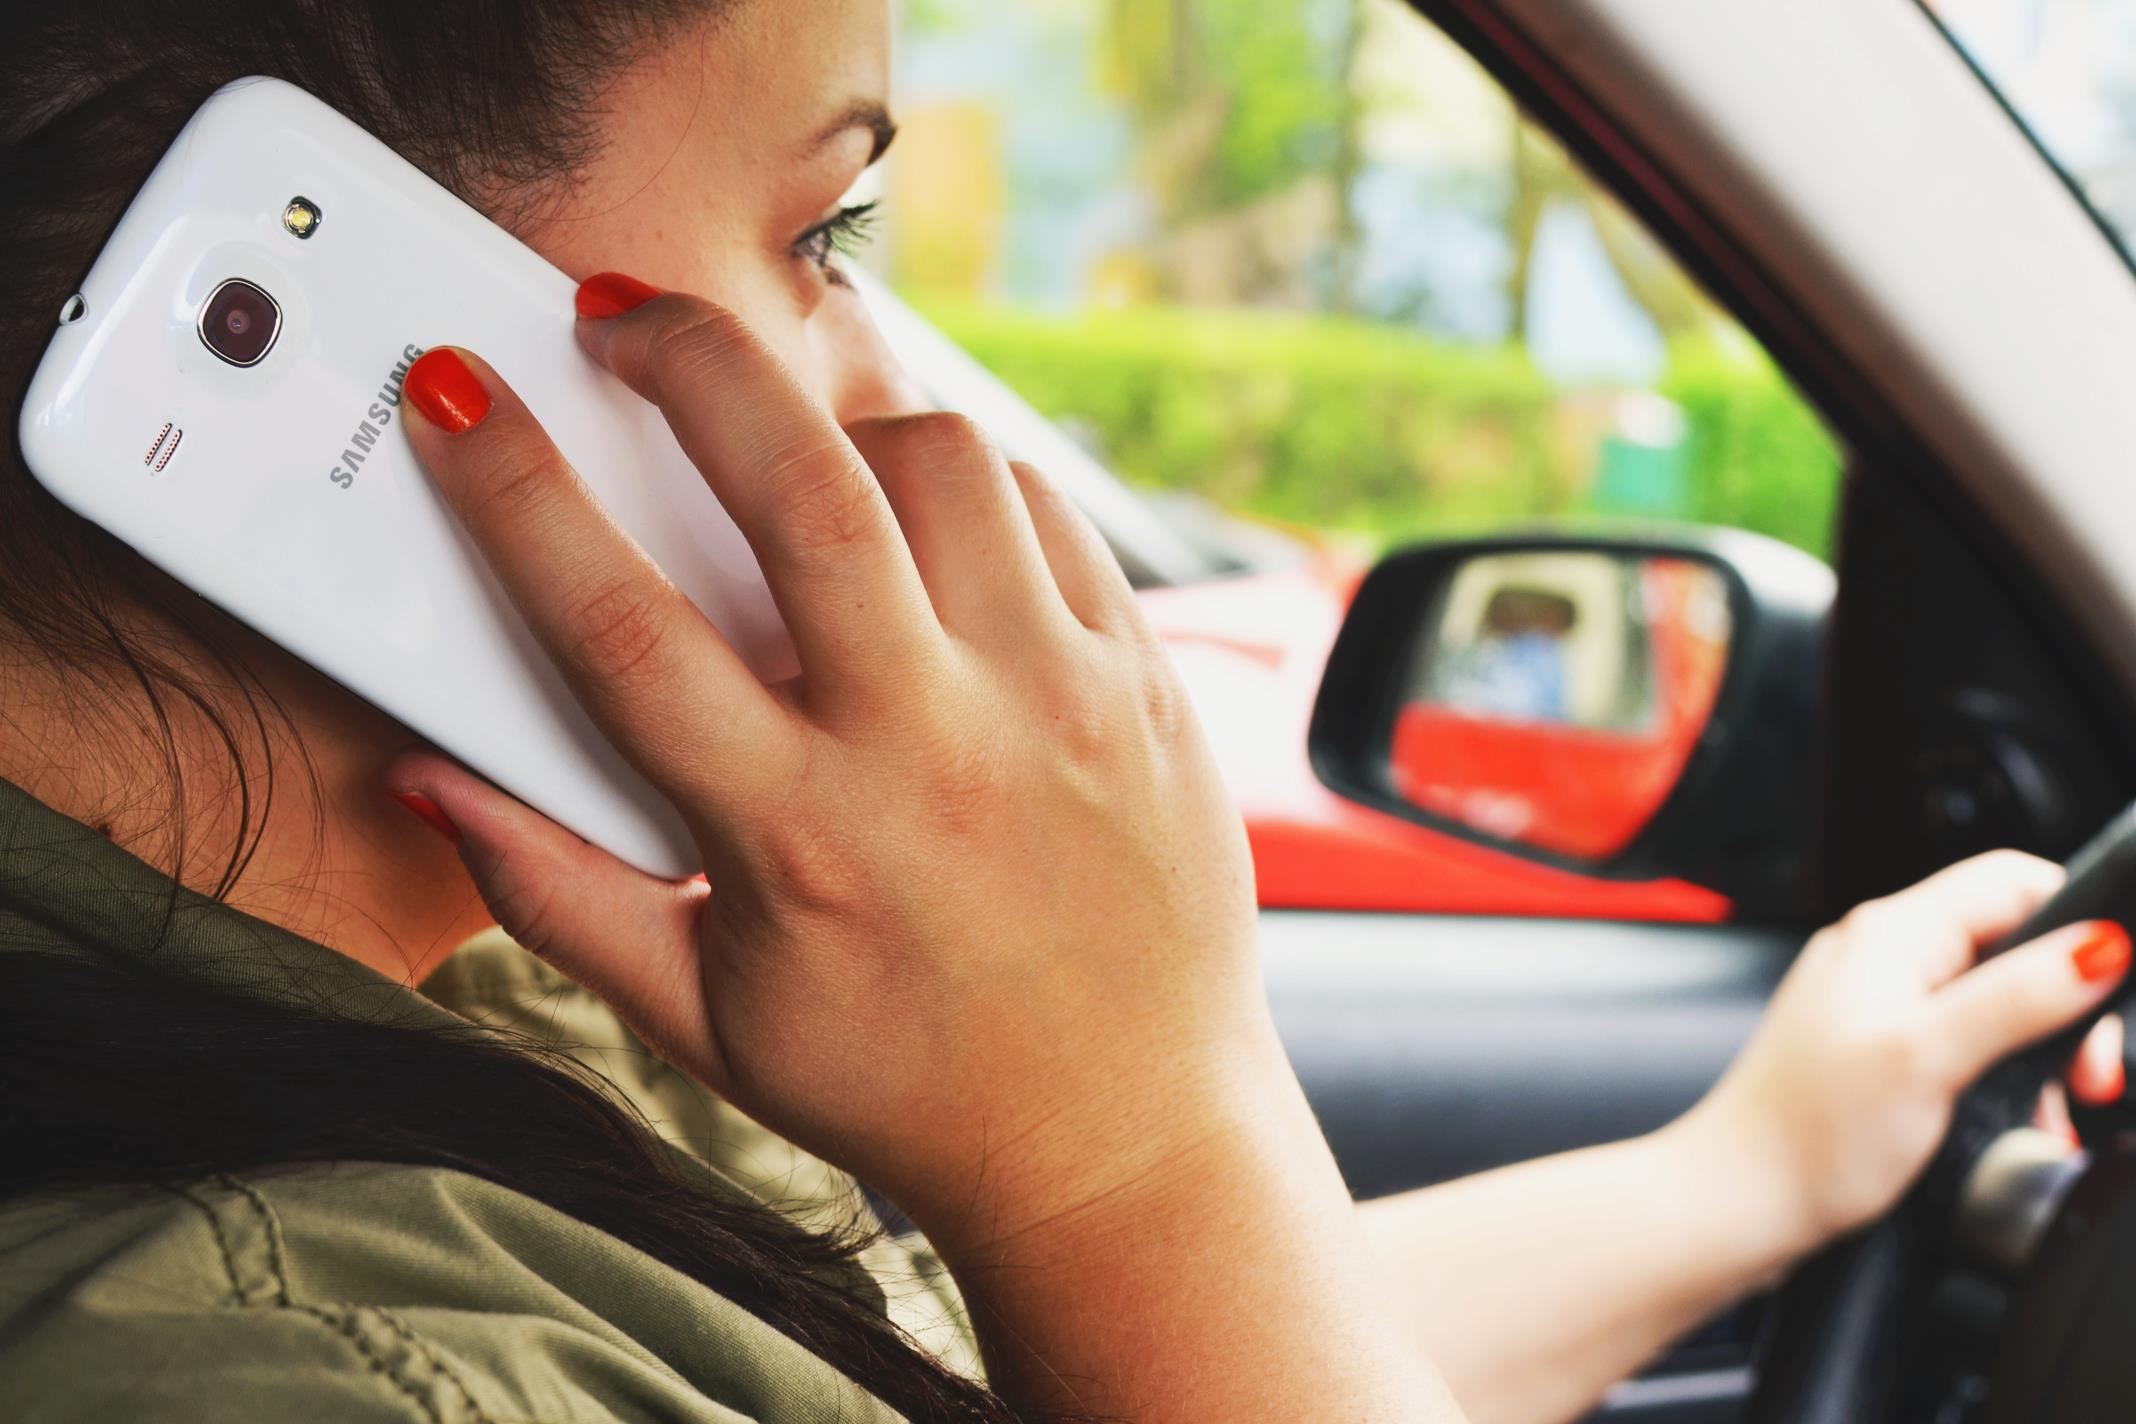 person-woman-smartphone-car.jpg